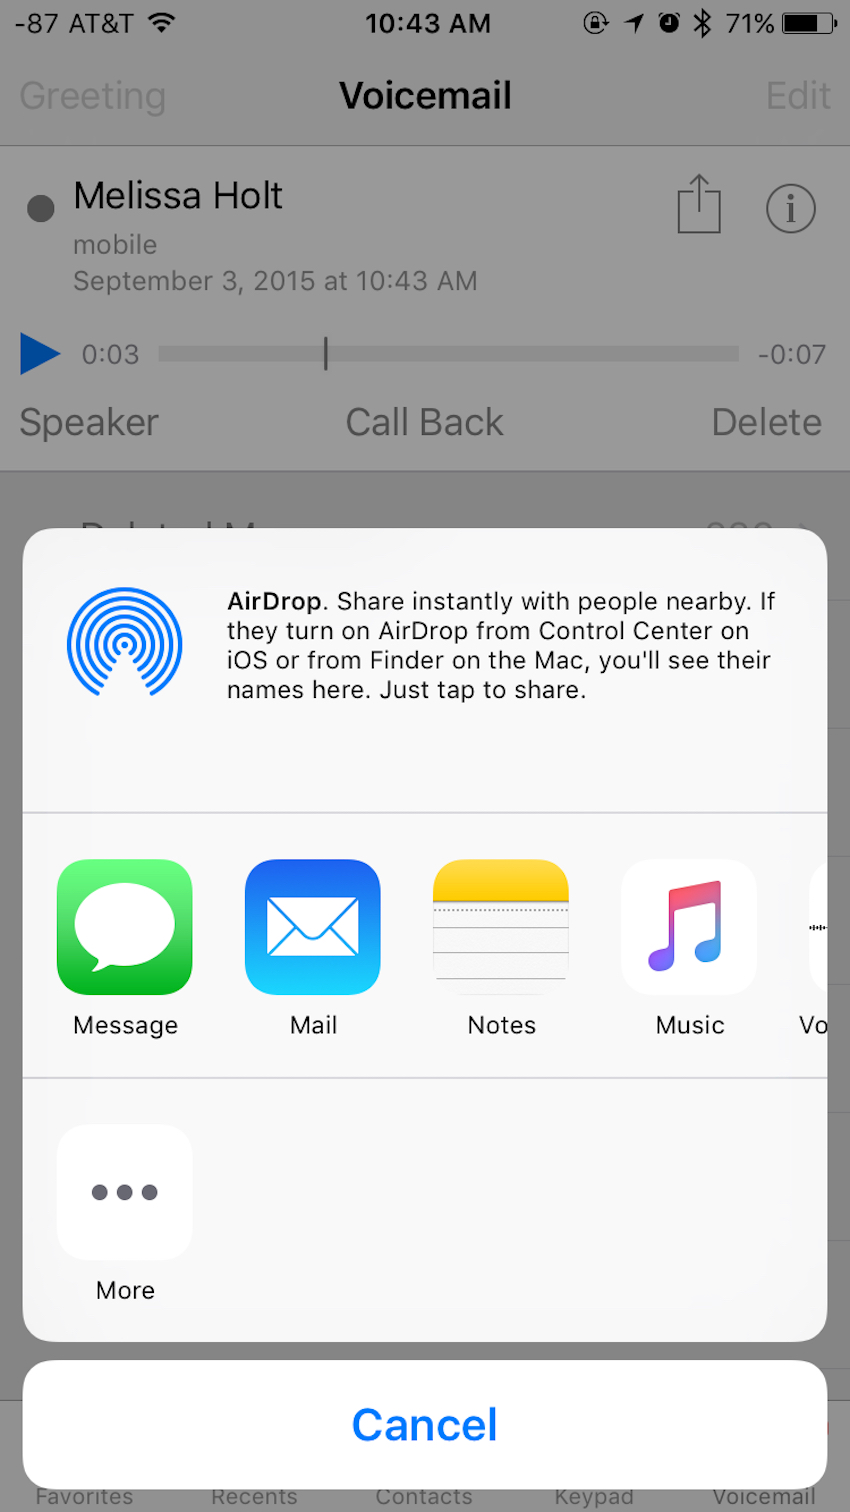 You can share Voice Mails via AirDrop, SMS, email, and more